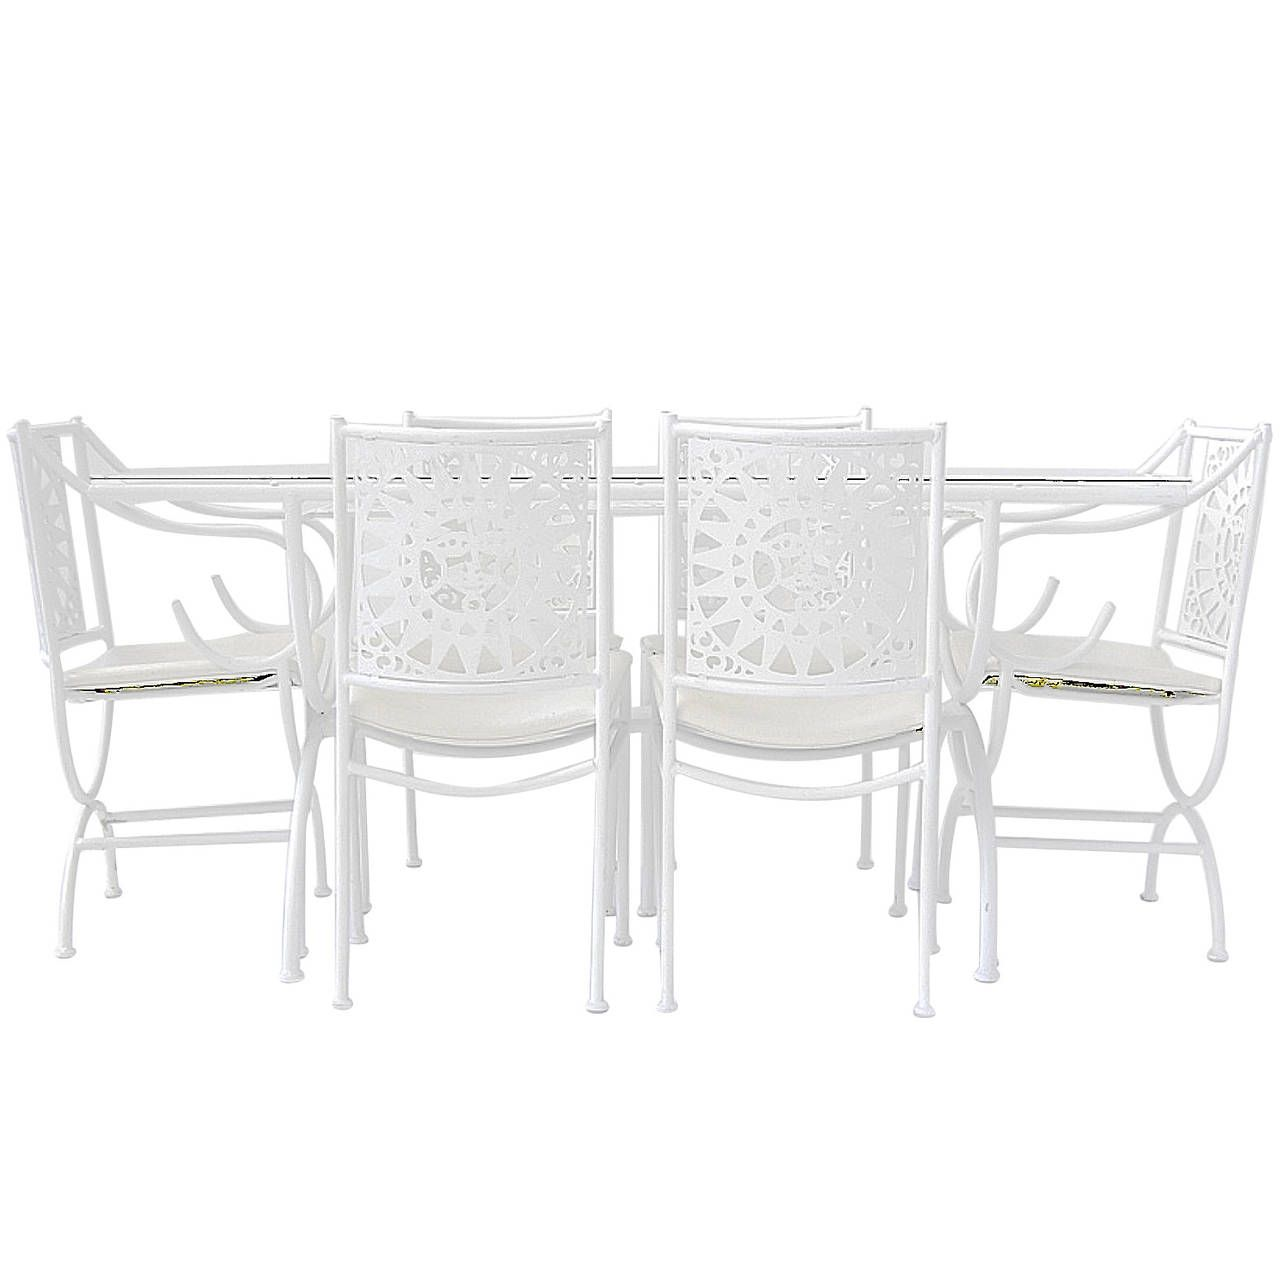 Arthur Umanoff For Shaver Howard Sun Patio Set With Table And Six Chairs